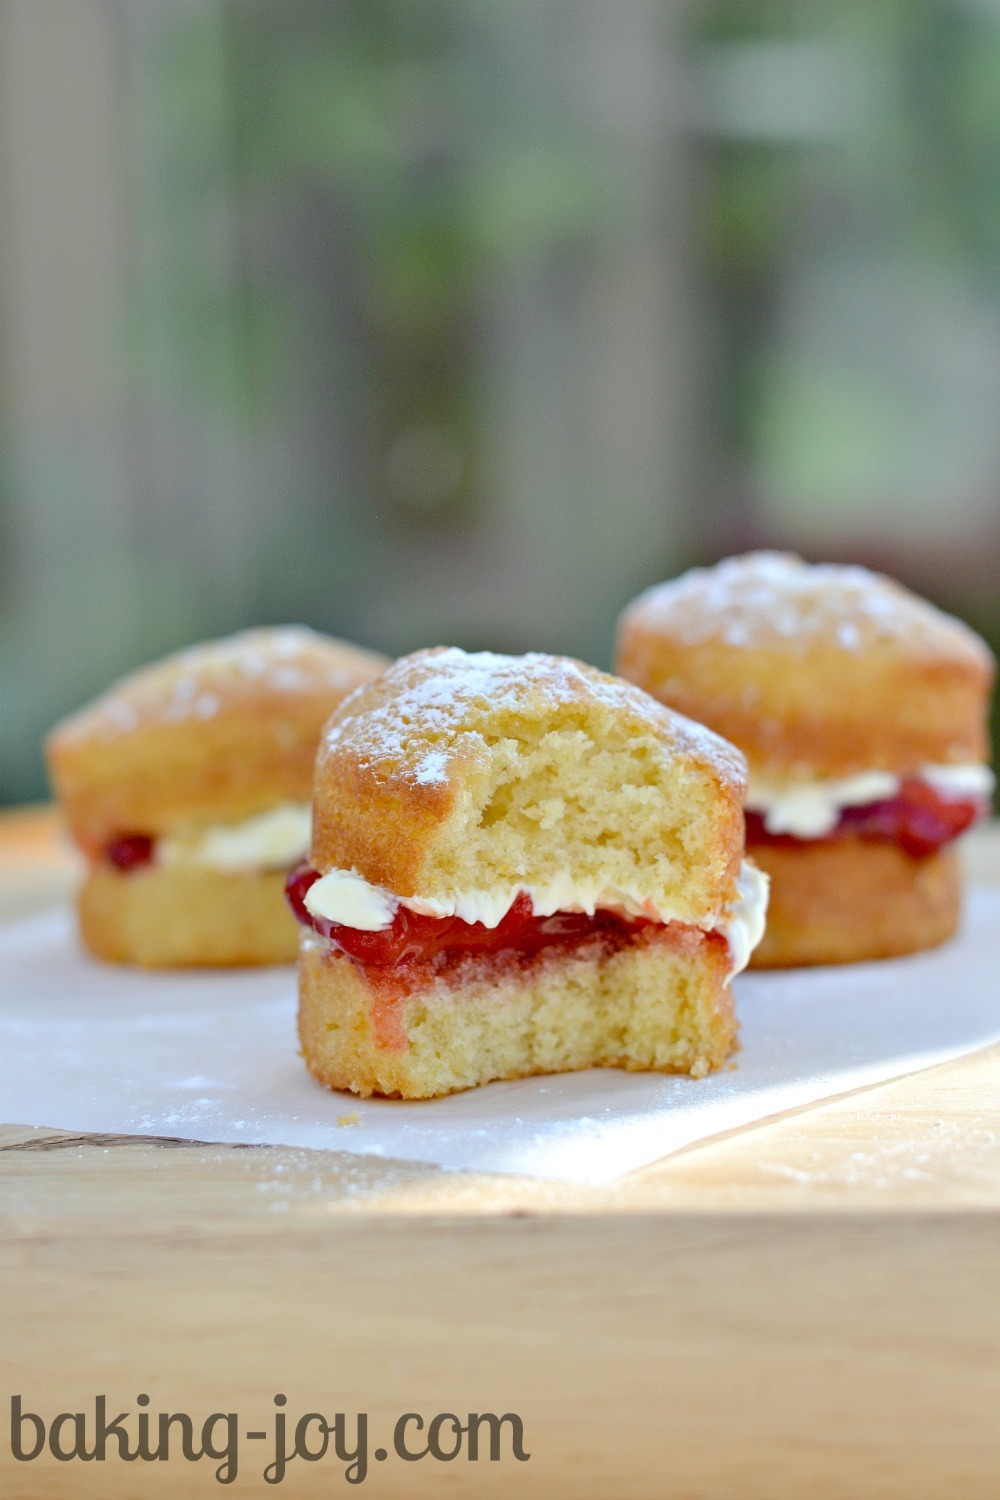 Mini Victoria Sandwiches with Clotted Cream and Homemade Strawberry Jam